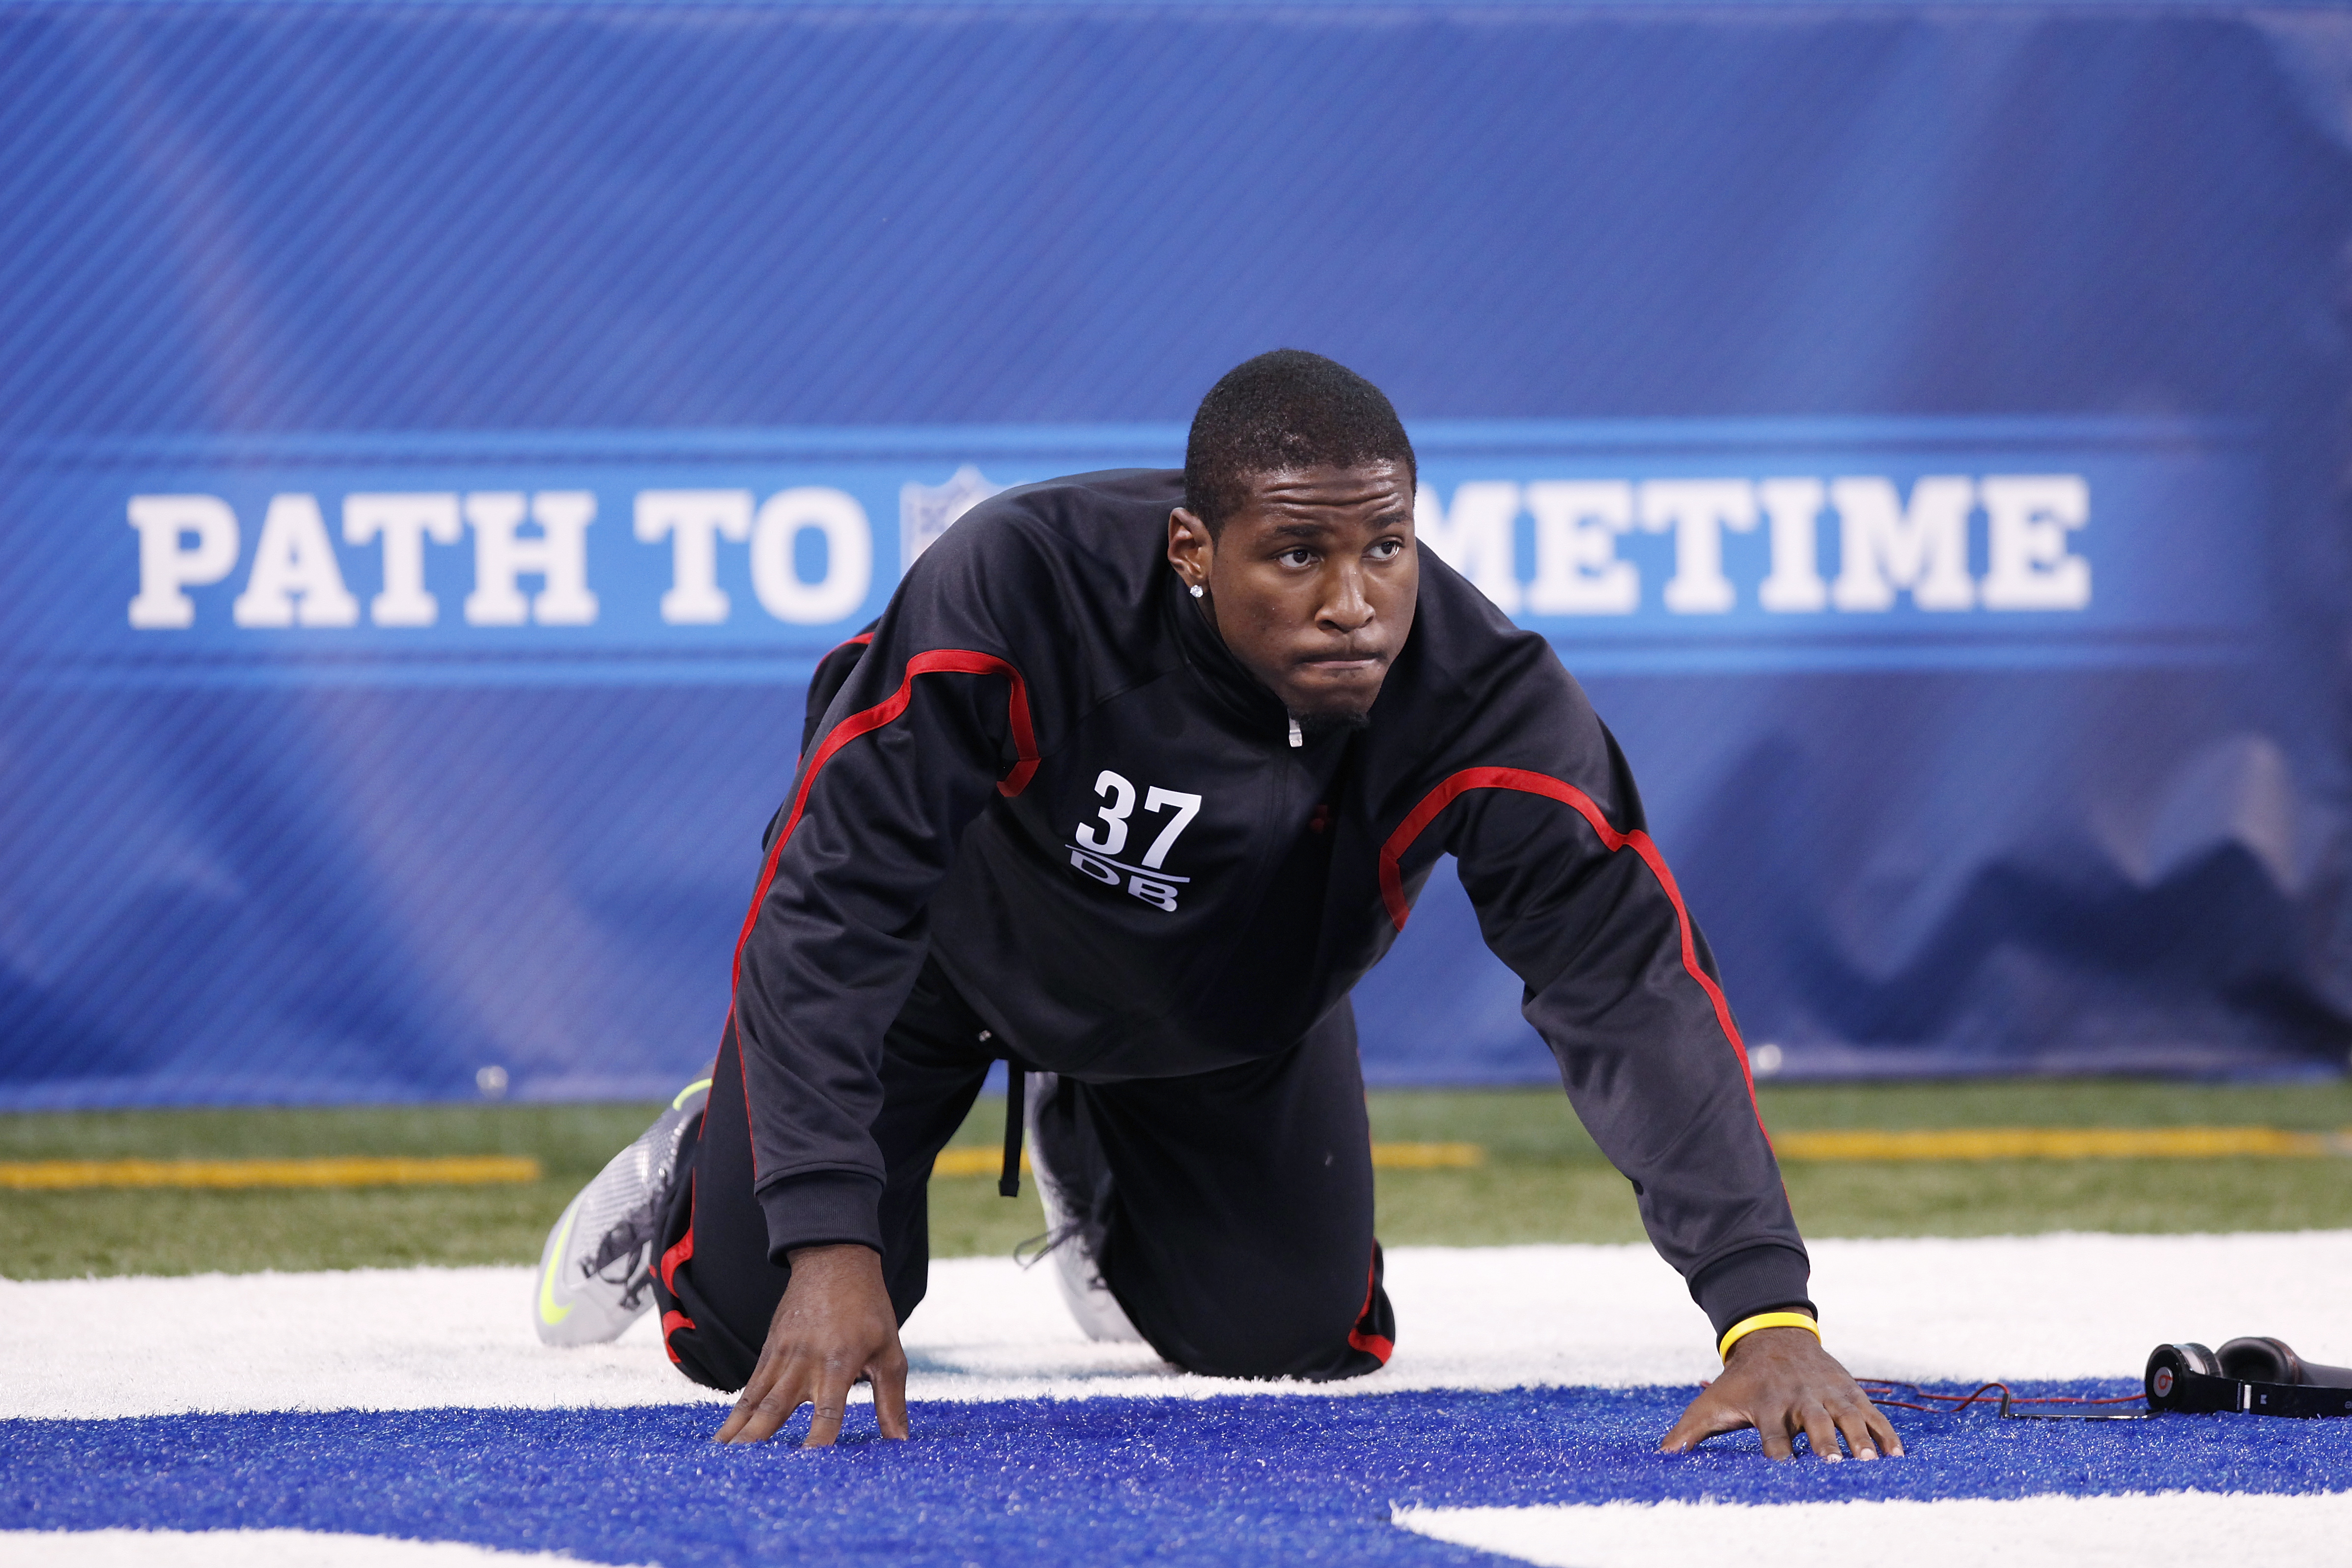 INDIANAPOLIS, IN - MARCH 1: Defensive back Patrick Peterson #37 of LSU stretches before working out during the 2011 NFL Scouting Combine at Lucas Oil Stadium on February 28, 2011 in Indianapolis, Indiana. (Photo by Joe Robbins/Getty Images)